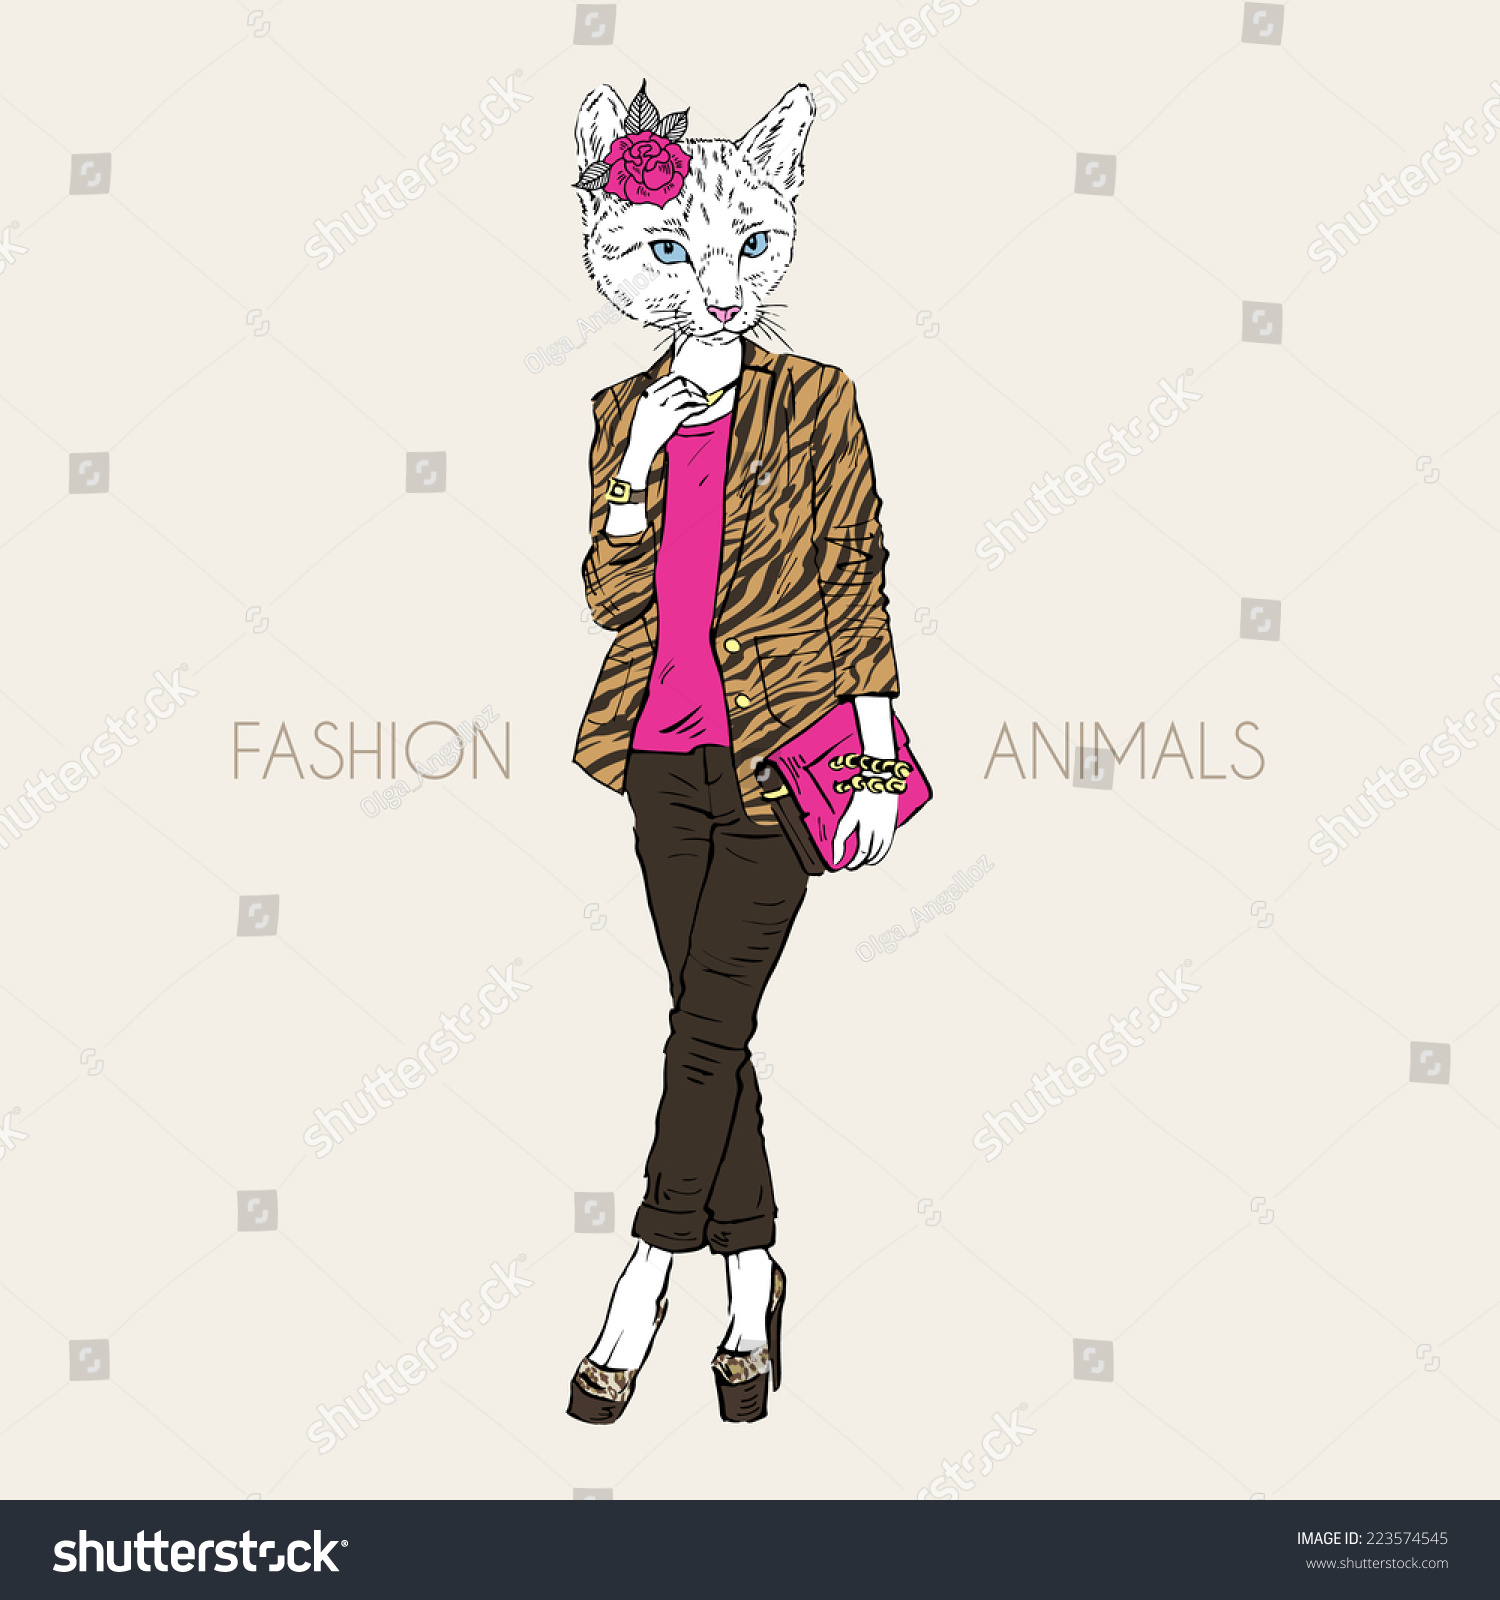 Fashion Illustration Of Cat Girl Dressed Up In City Style